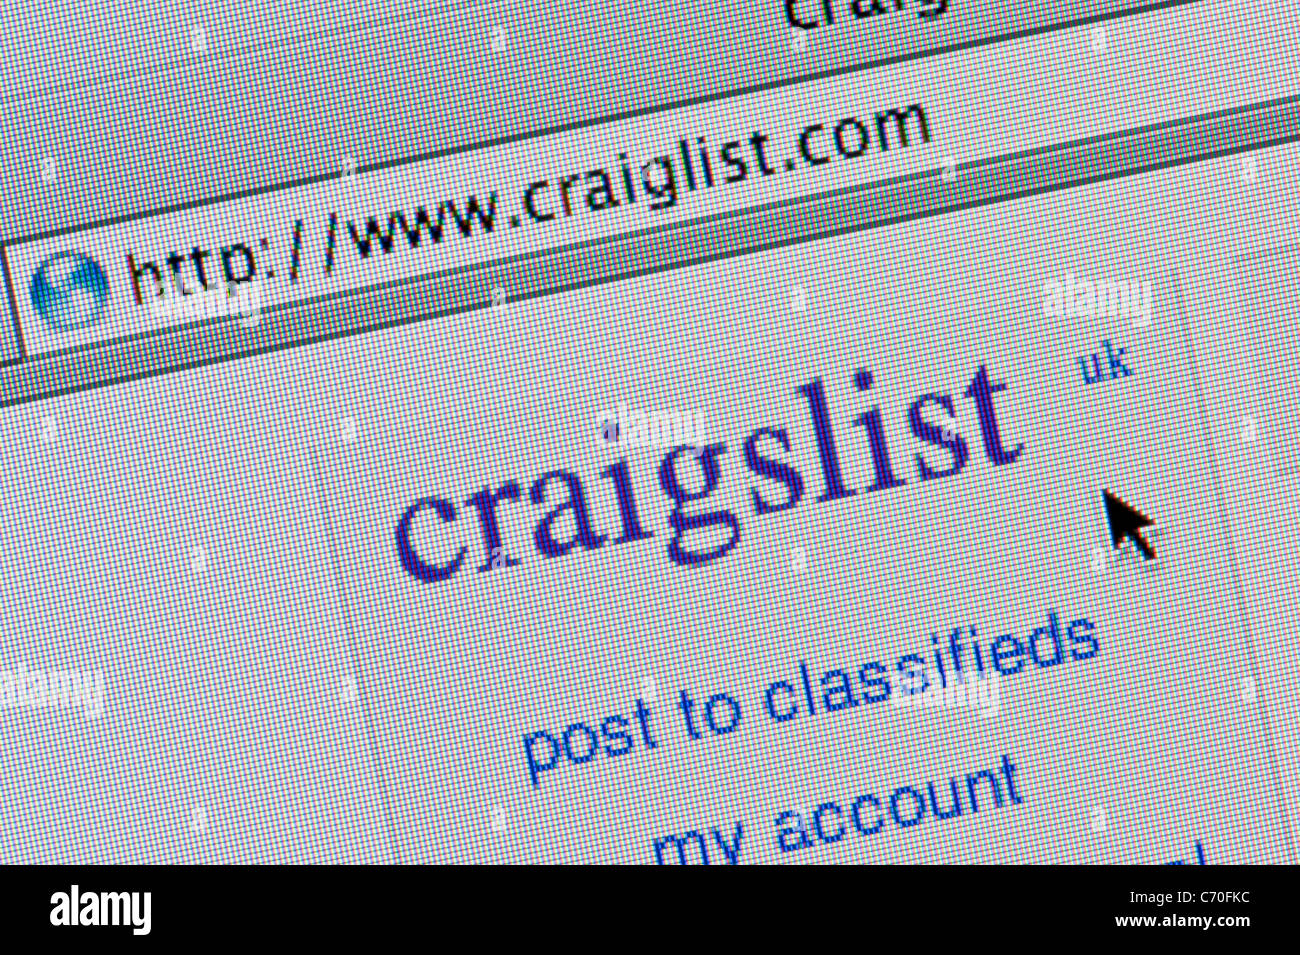 Craigslist Computer Stock Photos & Craigslist Computer Stock Images